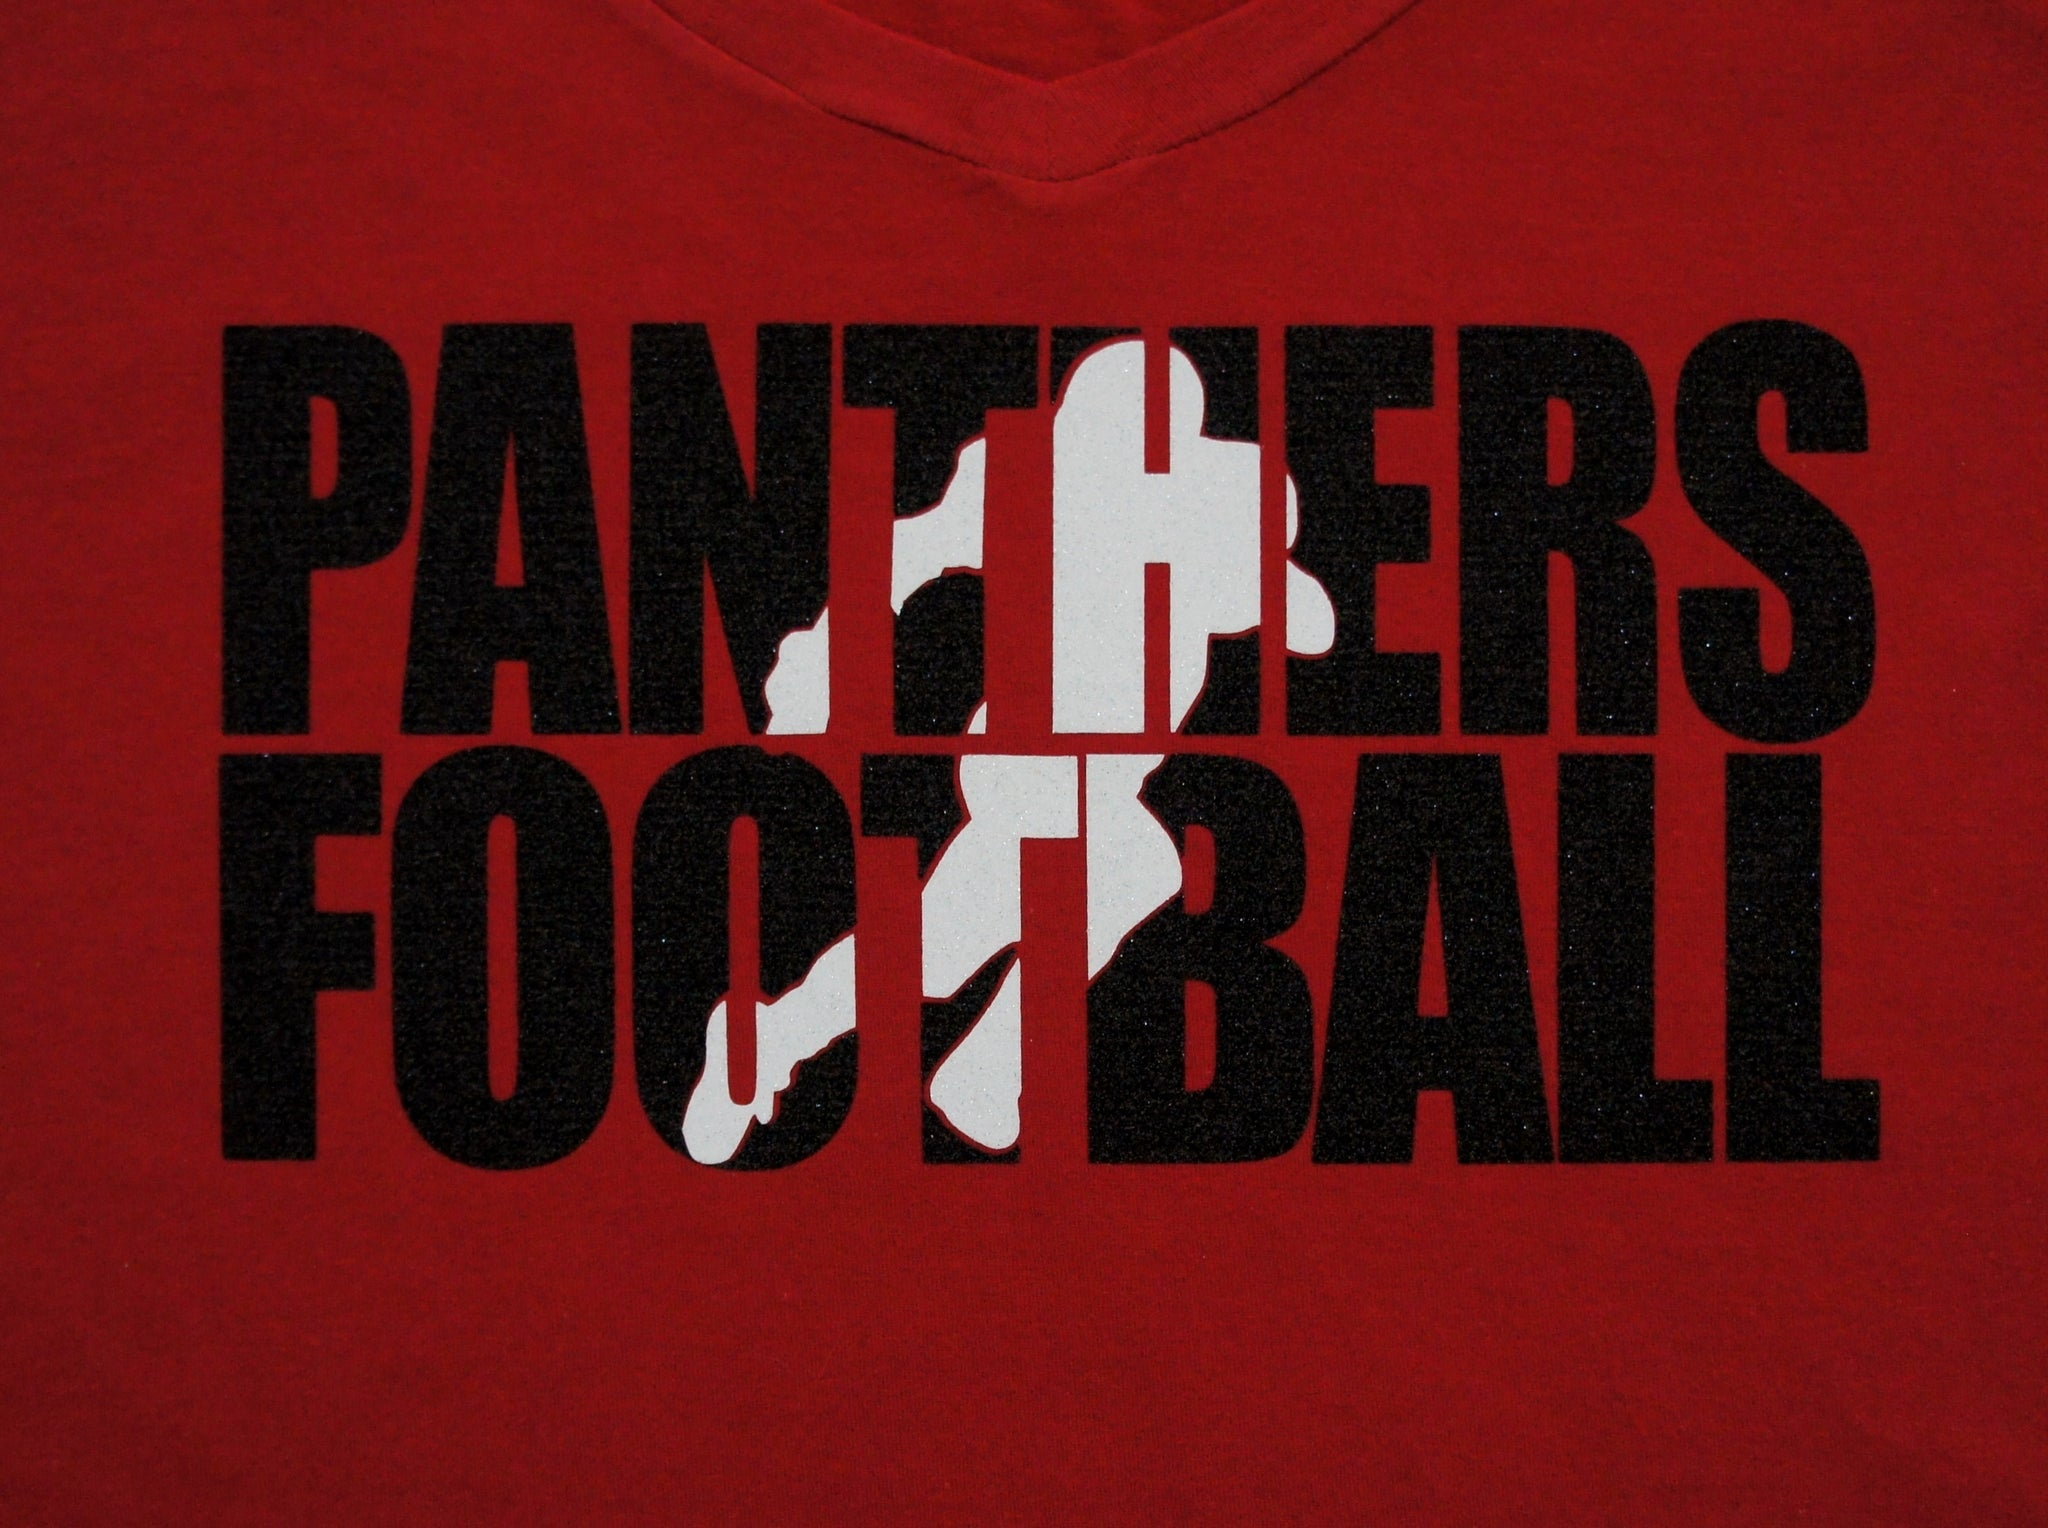 3fd57ce83 Football Shirt - Panthers Football Shown. Customize for your team name